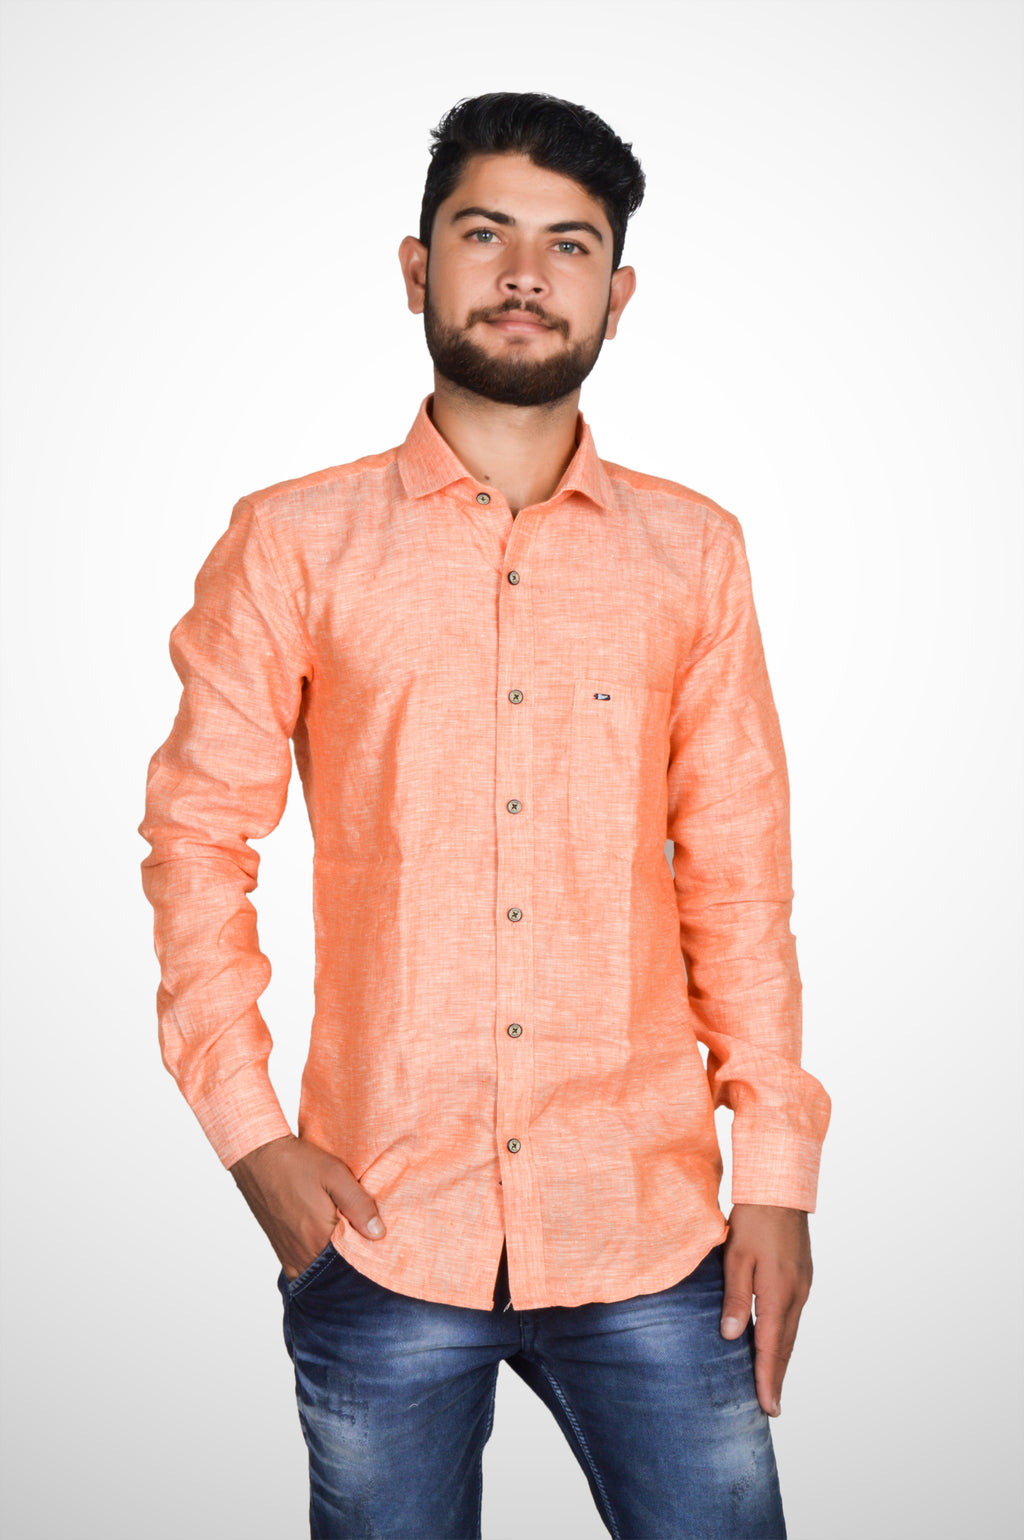 Zerox Men's Plain Pure Linen Full Sleeves Regular Fit Formal Shirt (Peach) By Indians Boutique